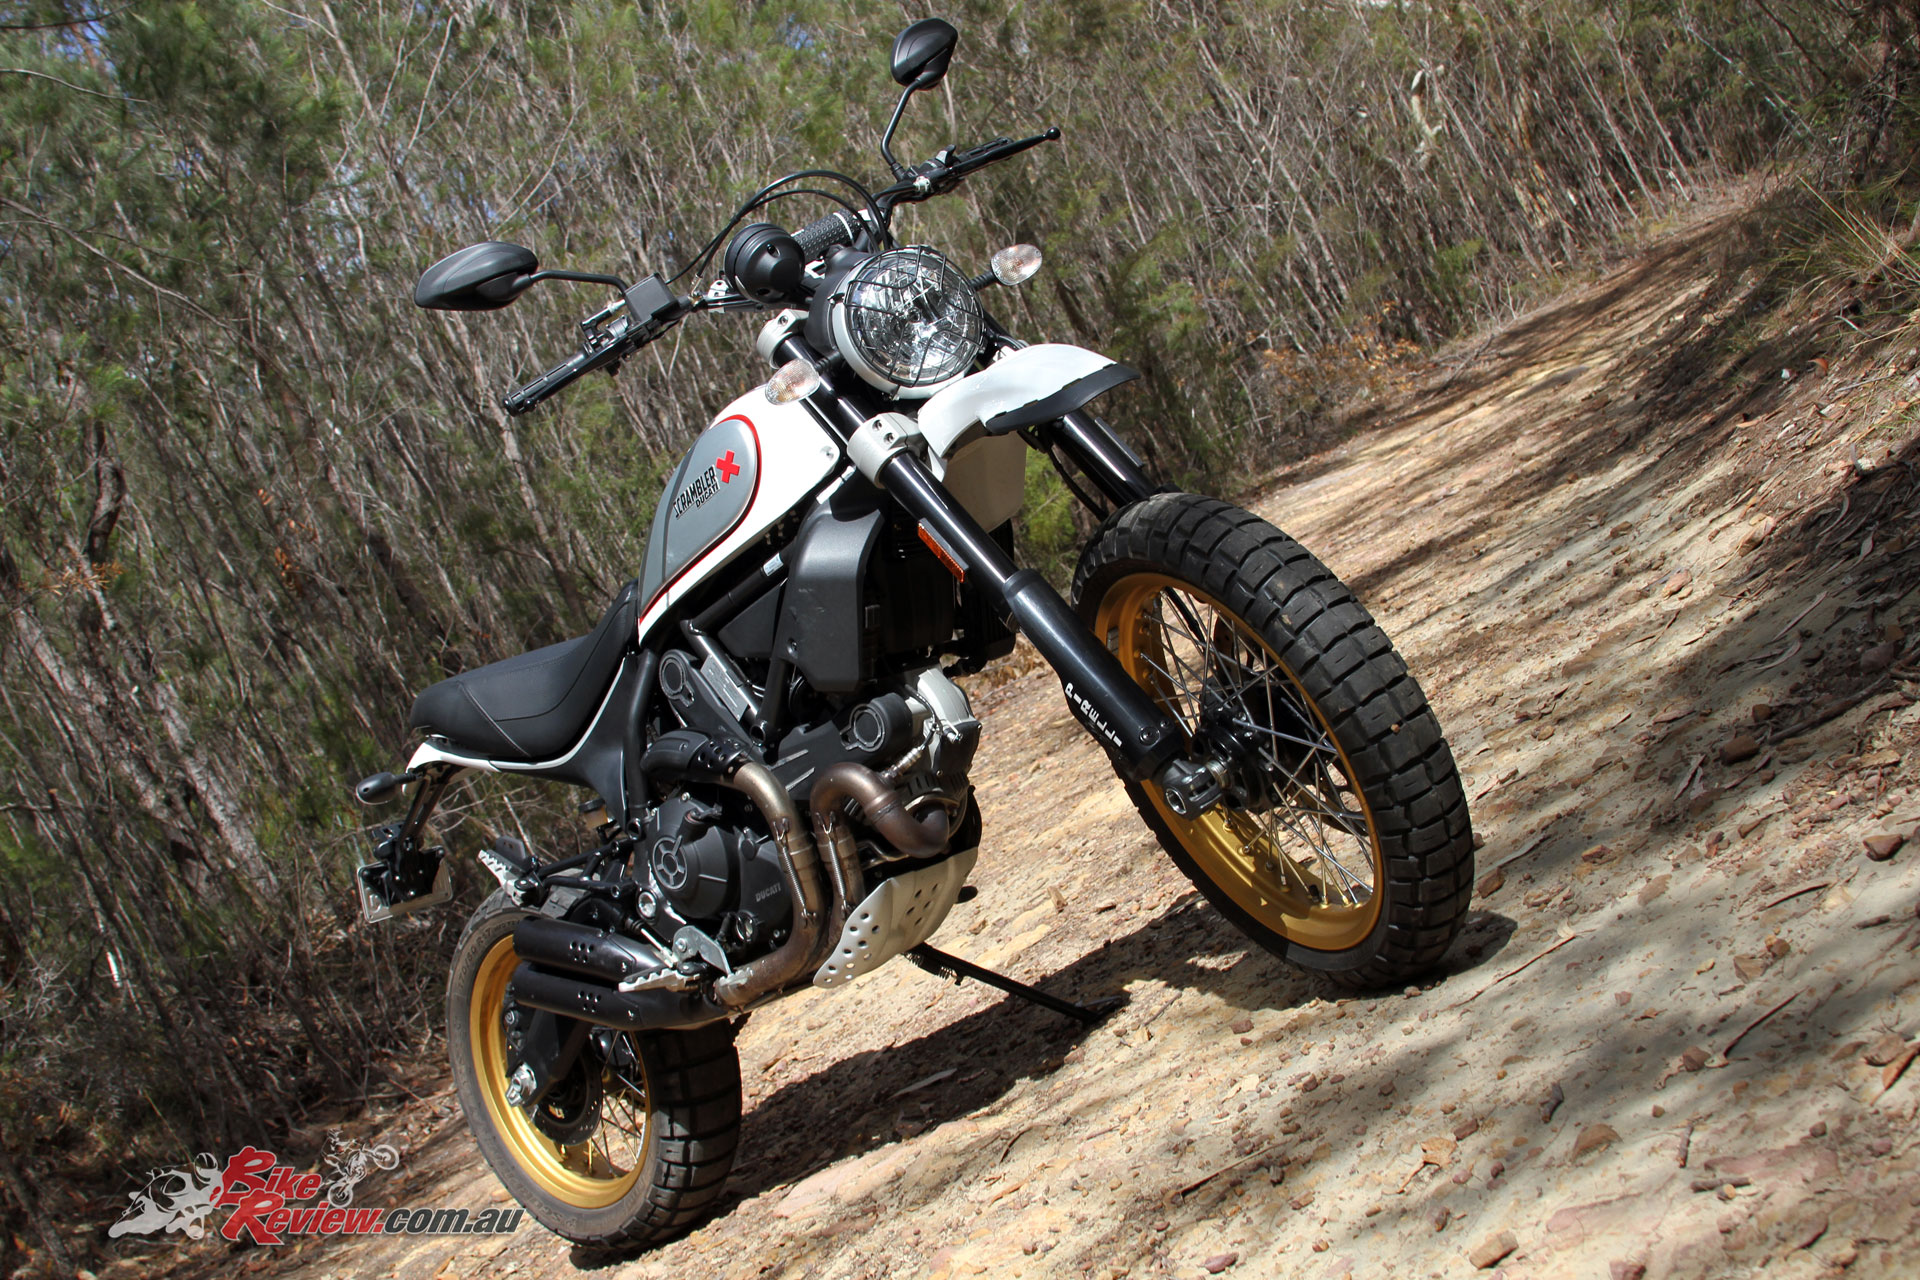 The Scrambler Desert Sled looks the business, but despite the off-road orientation is great on the tarmac